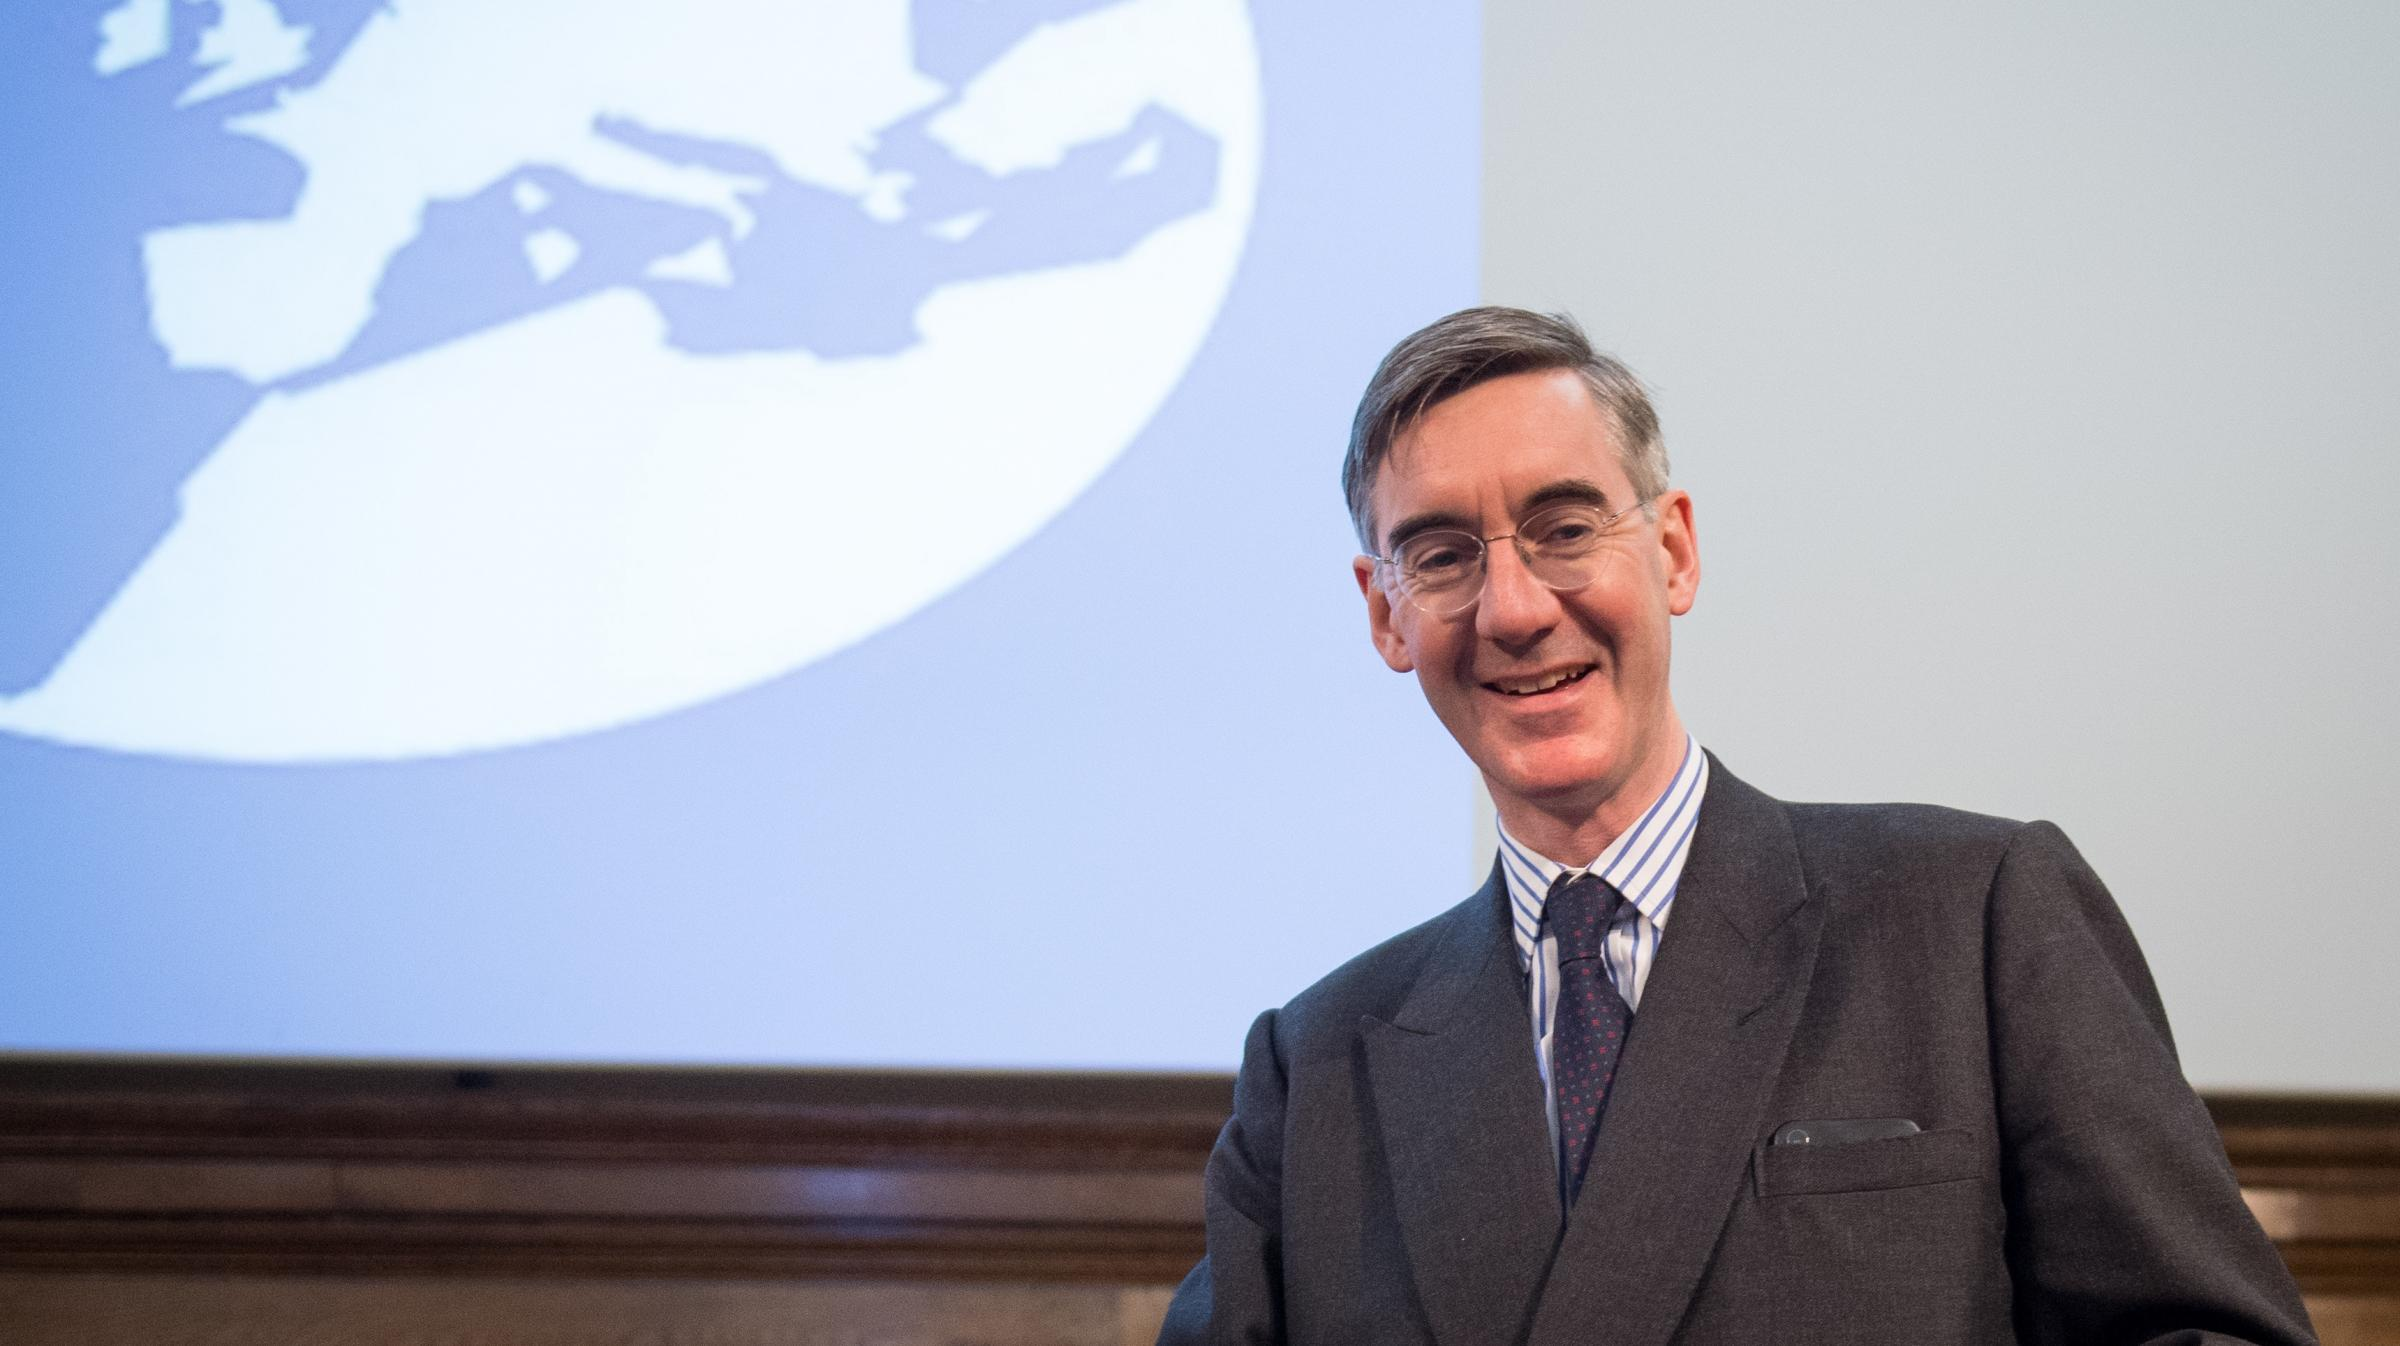 Pushing Brexit past March acceptable to Rees-Mogg – but only to finalise laws